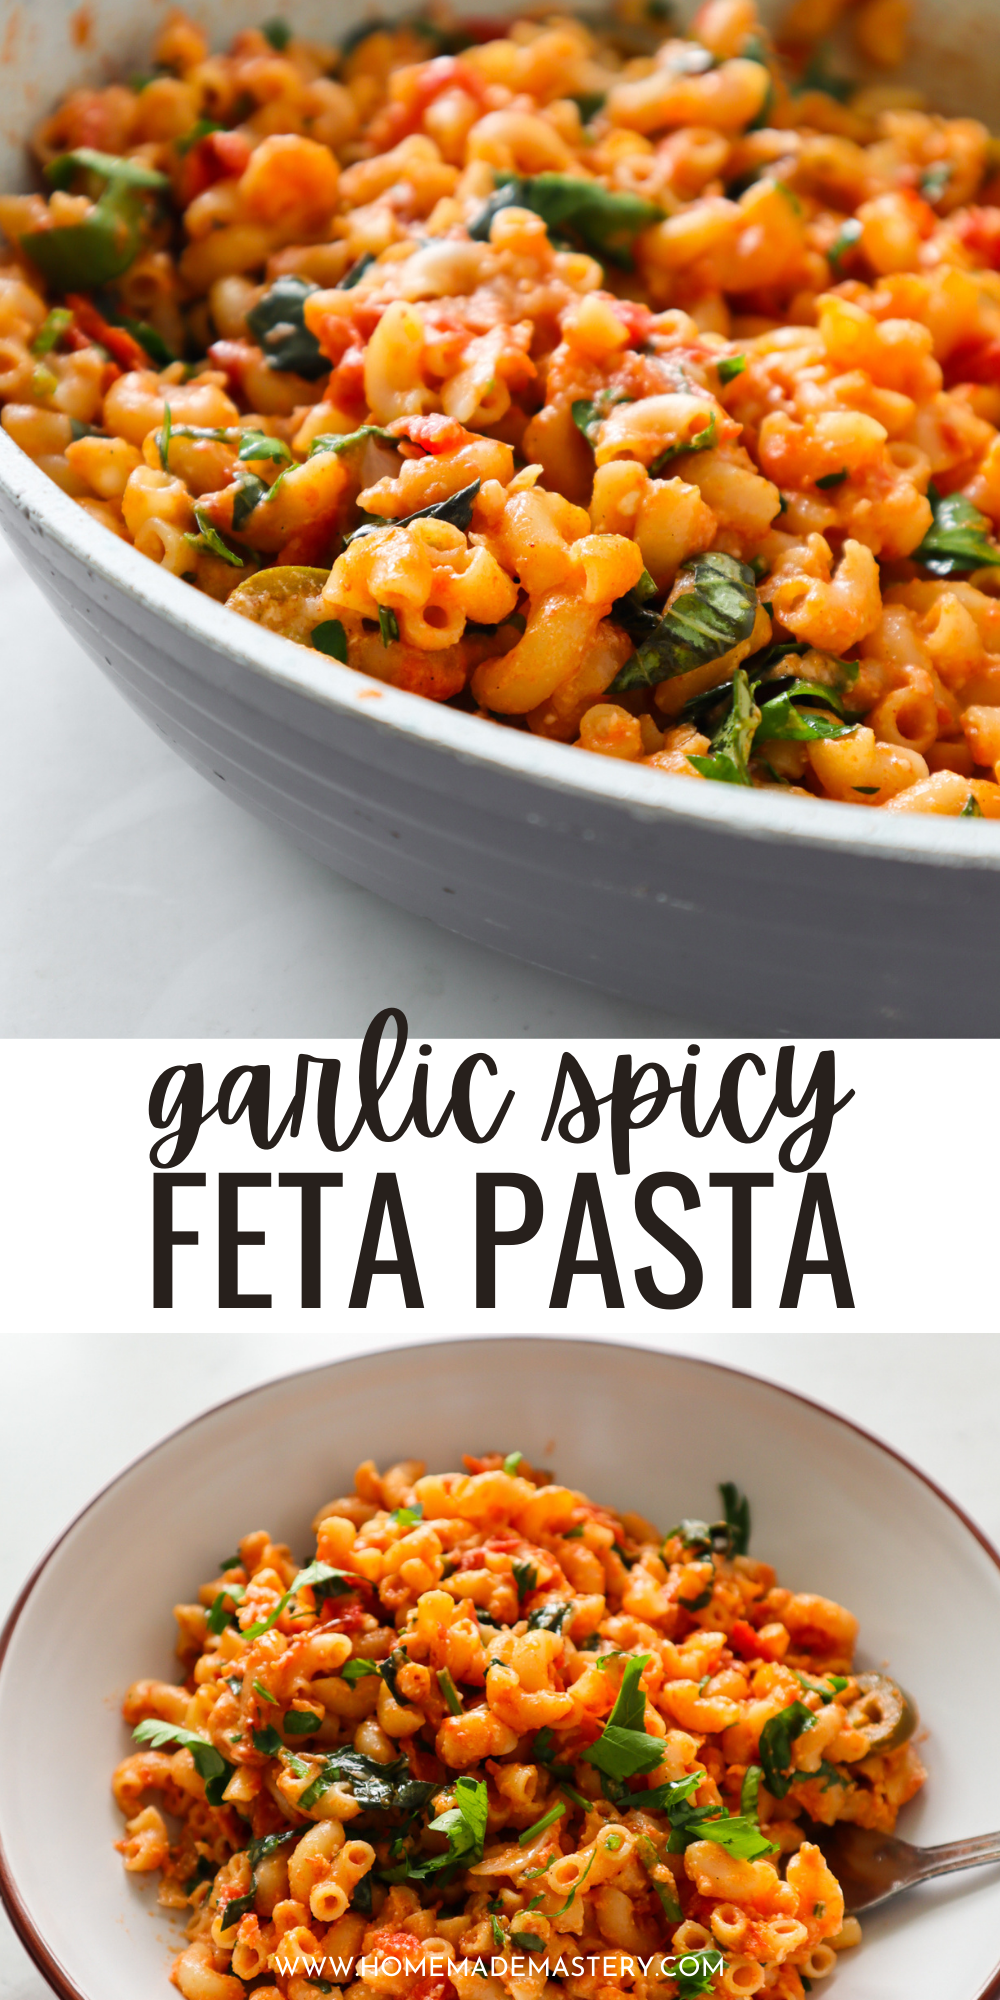 This delicious spicy feta pasta recipe is ready in 12 minutes on the stove top and is the perfect quick dinner idea for busy weeknights!